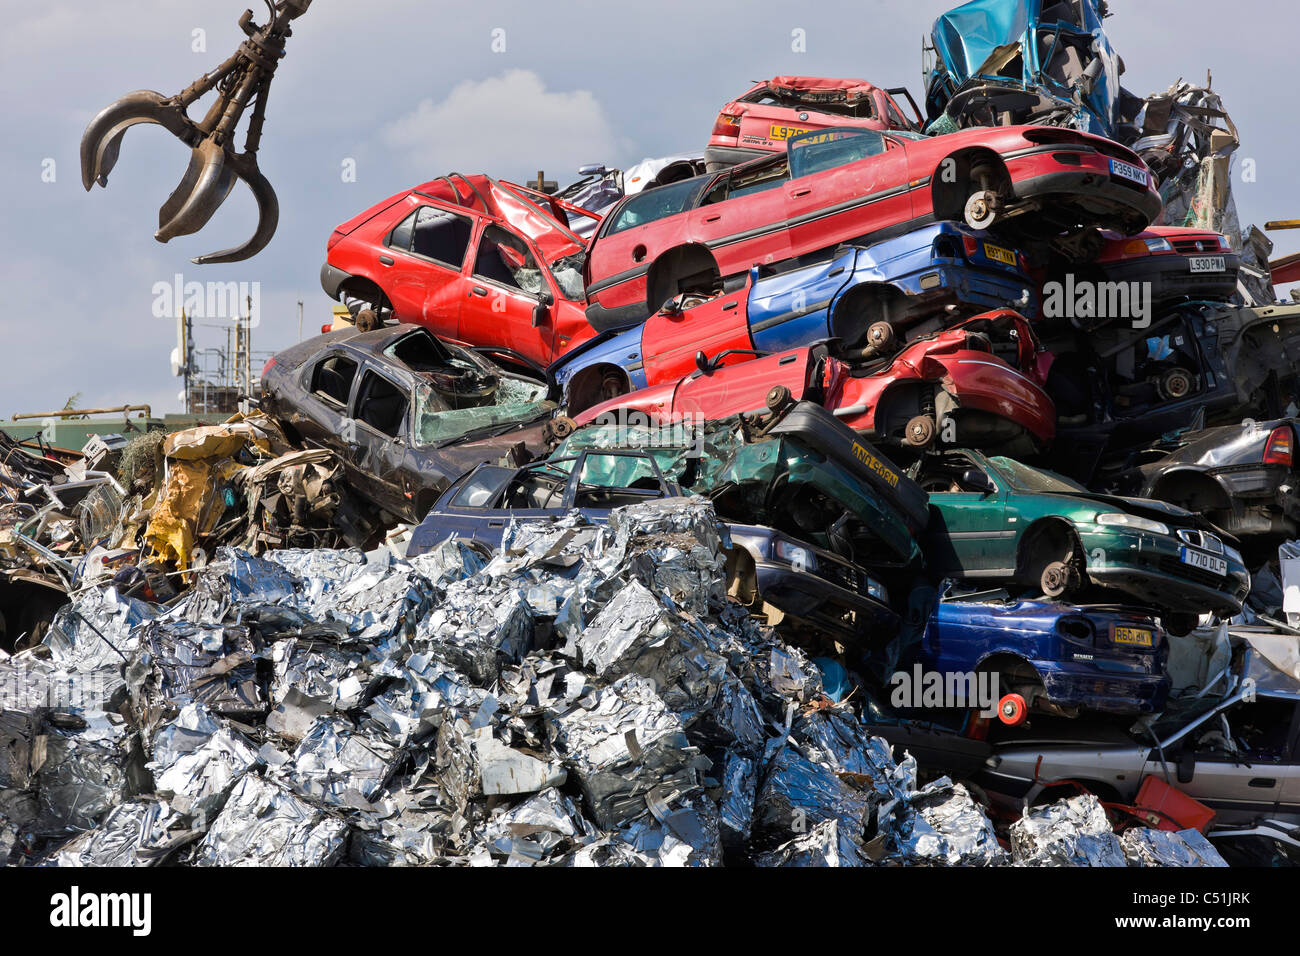 Scrapped Cars Stock Photos & Scrapped Cars Stock Images - Alamy